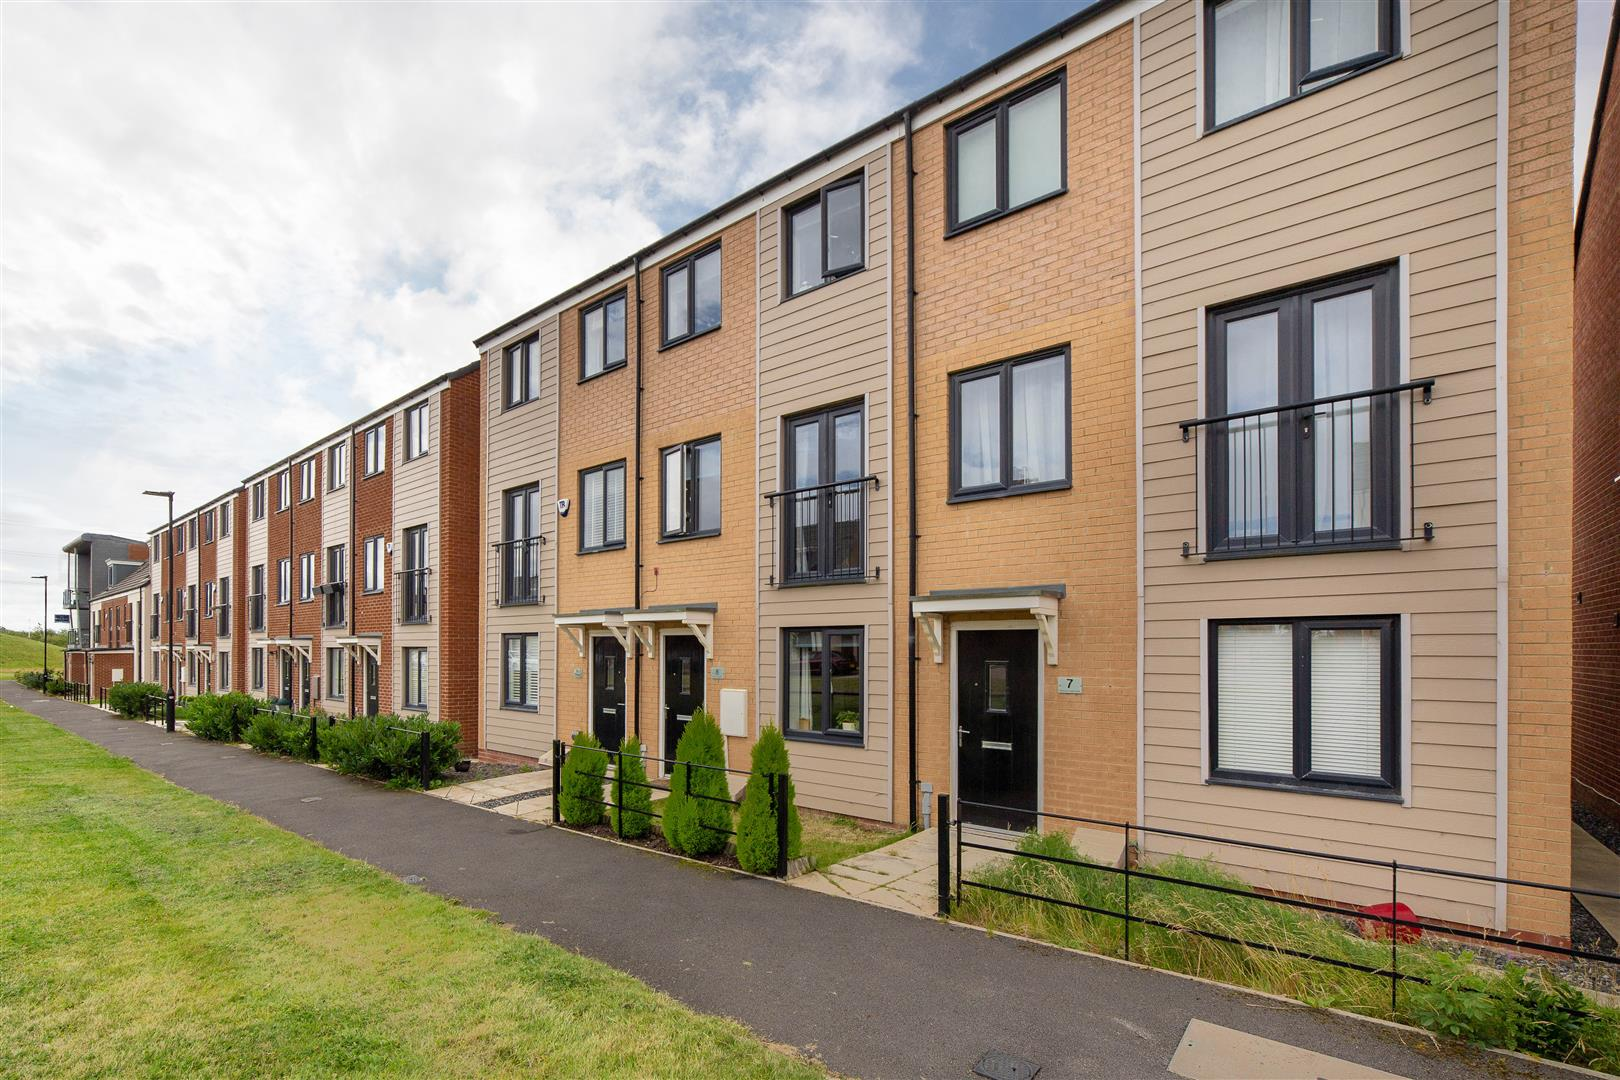 3 bed town house for sale in Great Park, NE13 9BP  - Property Image 1